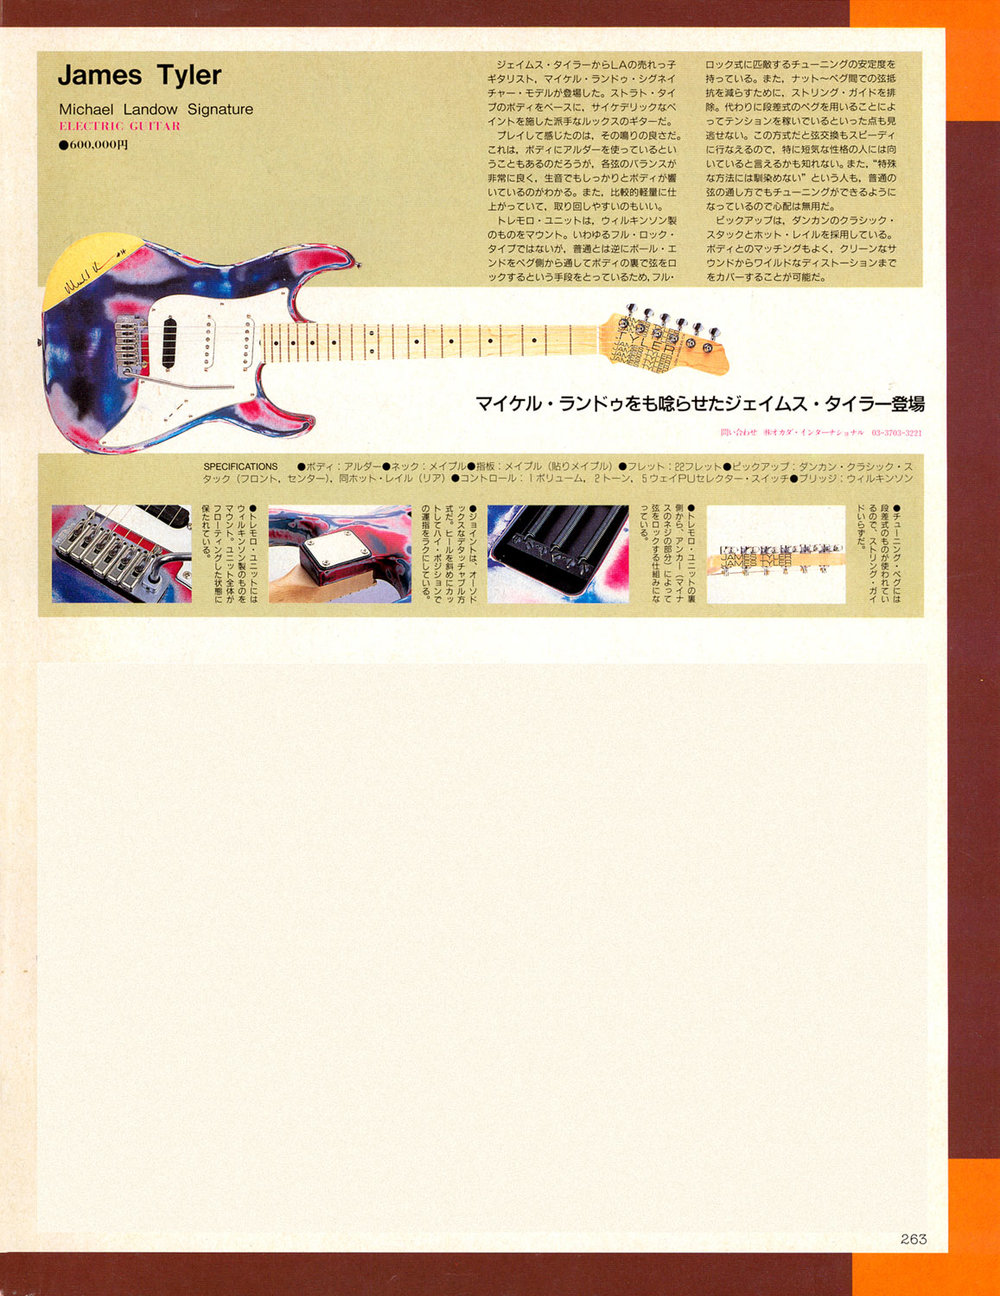 Copy of 1992 Guitar Magazine